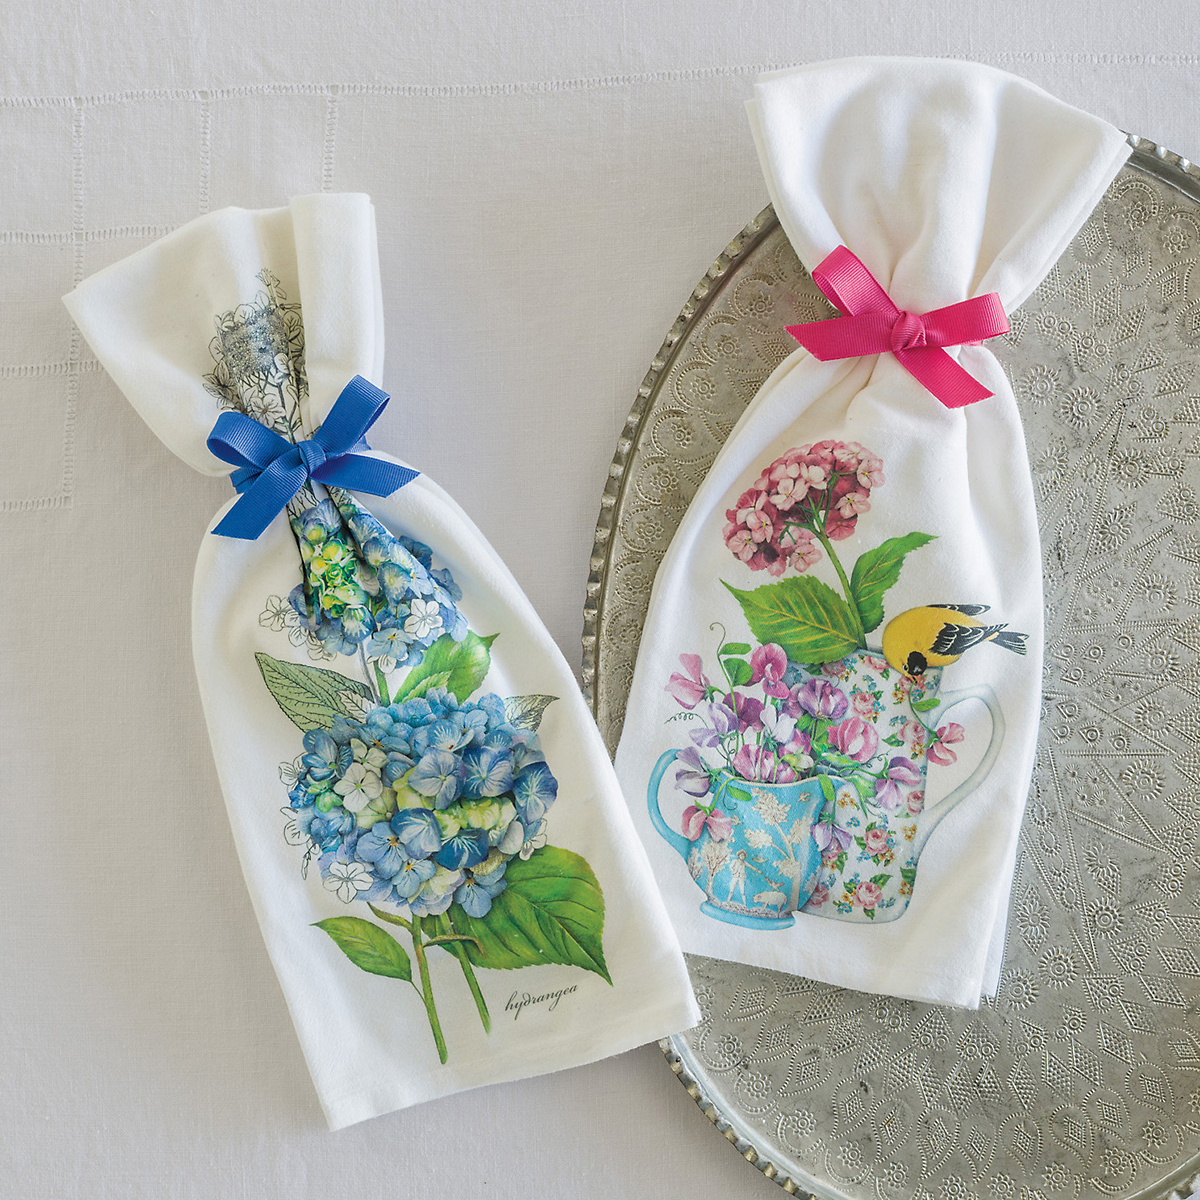 Tea Party Flour Sack Towels